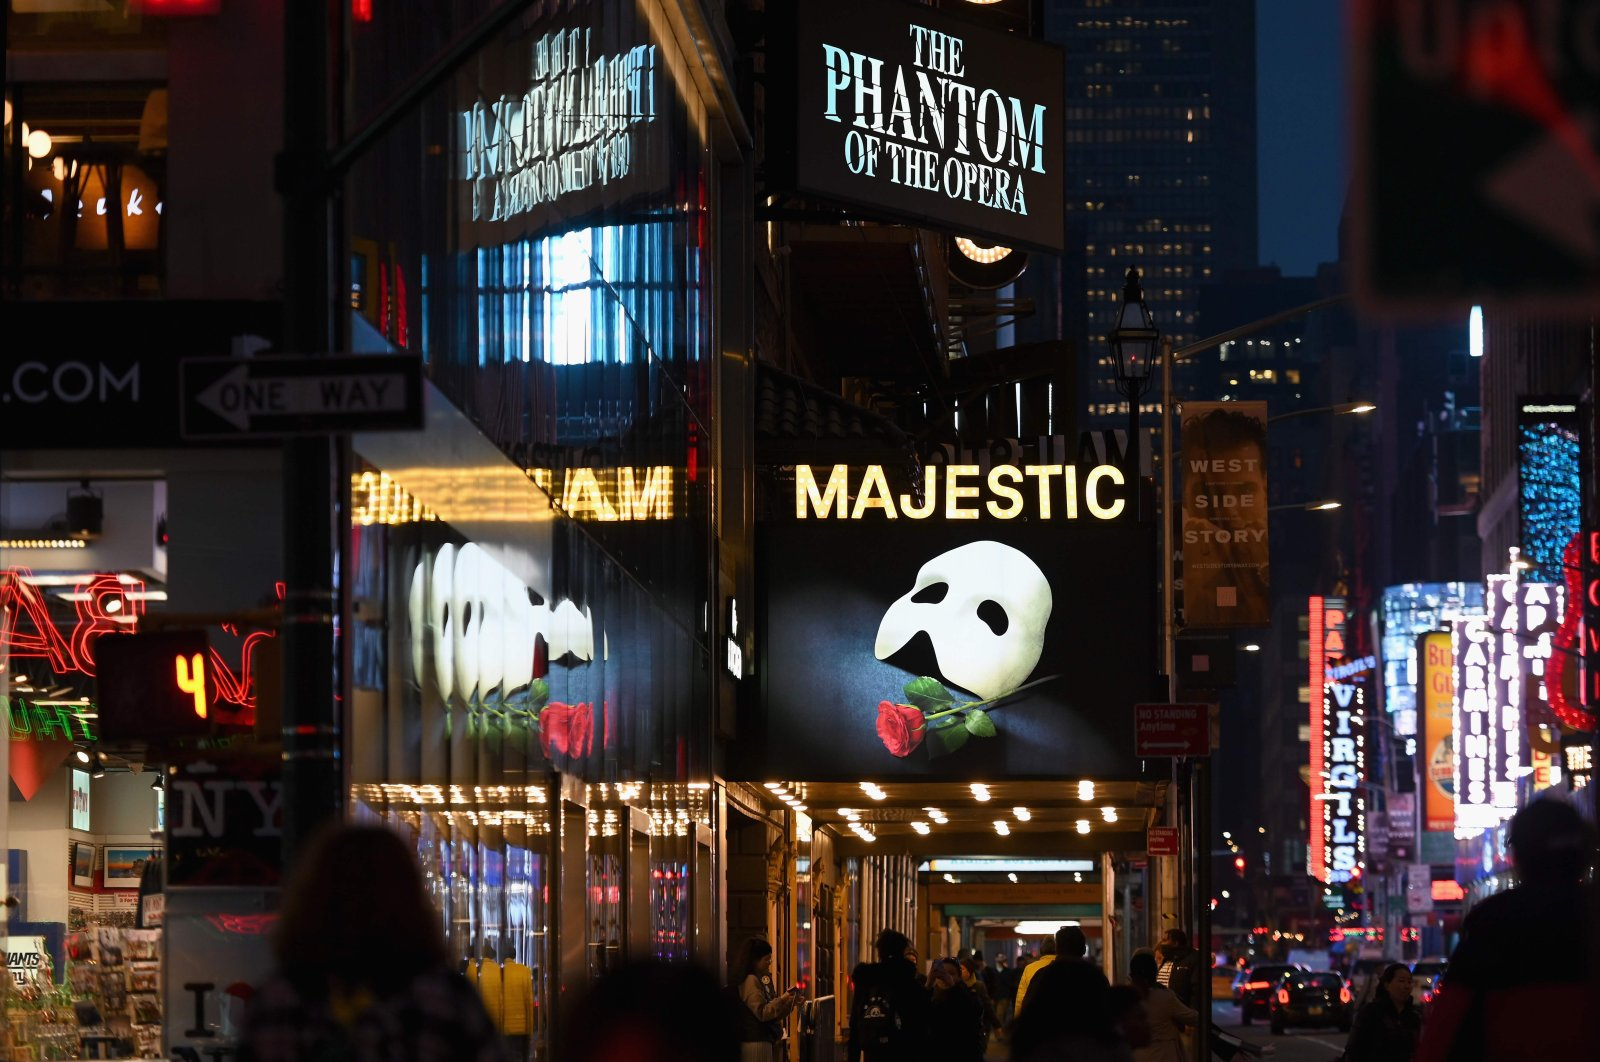 """In this file photo signage of the Broadway play """"The Phantom of the Opera"""" is seen at Time Square, New York City, U.S. March 12, 2020 (AFP Photo)"""